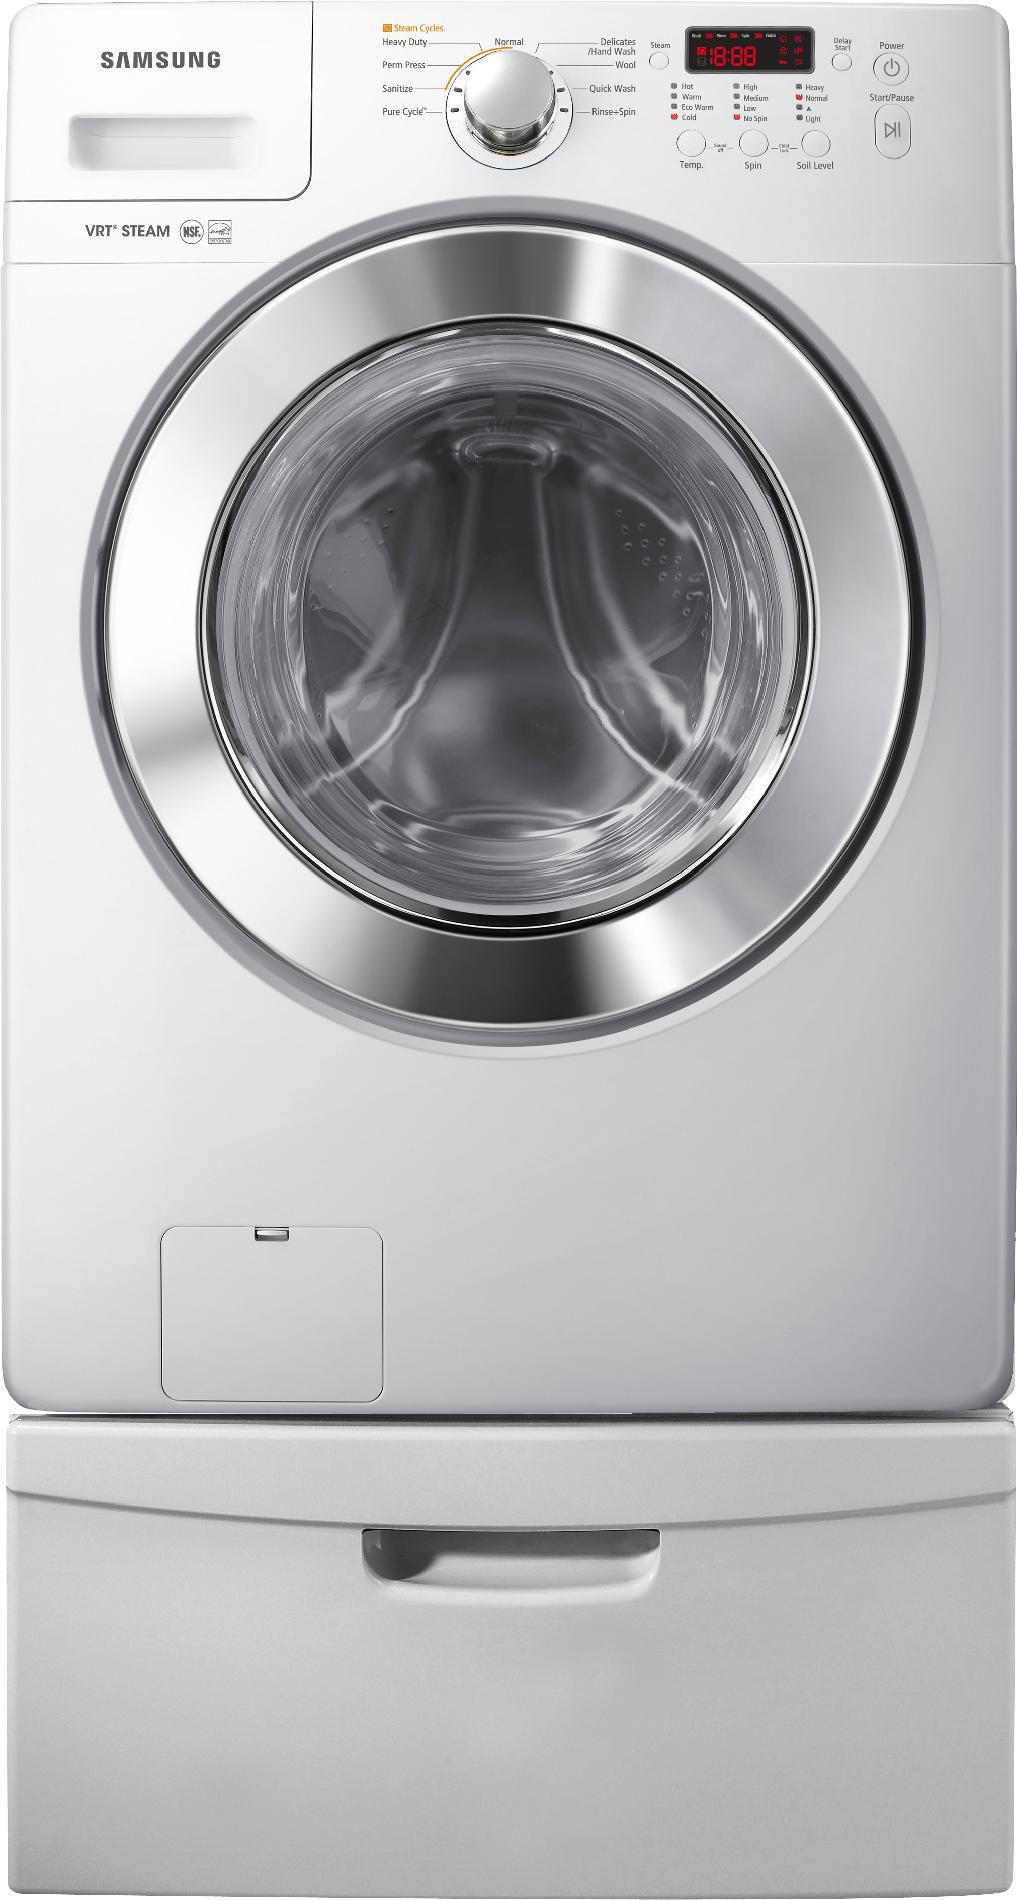 Samsung 7.3 cu. ft. Steam Electric Dryer - White